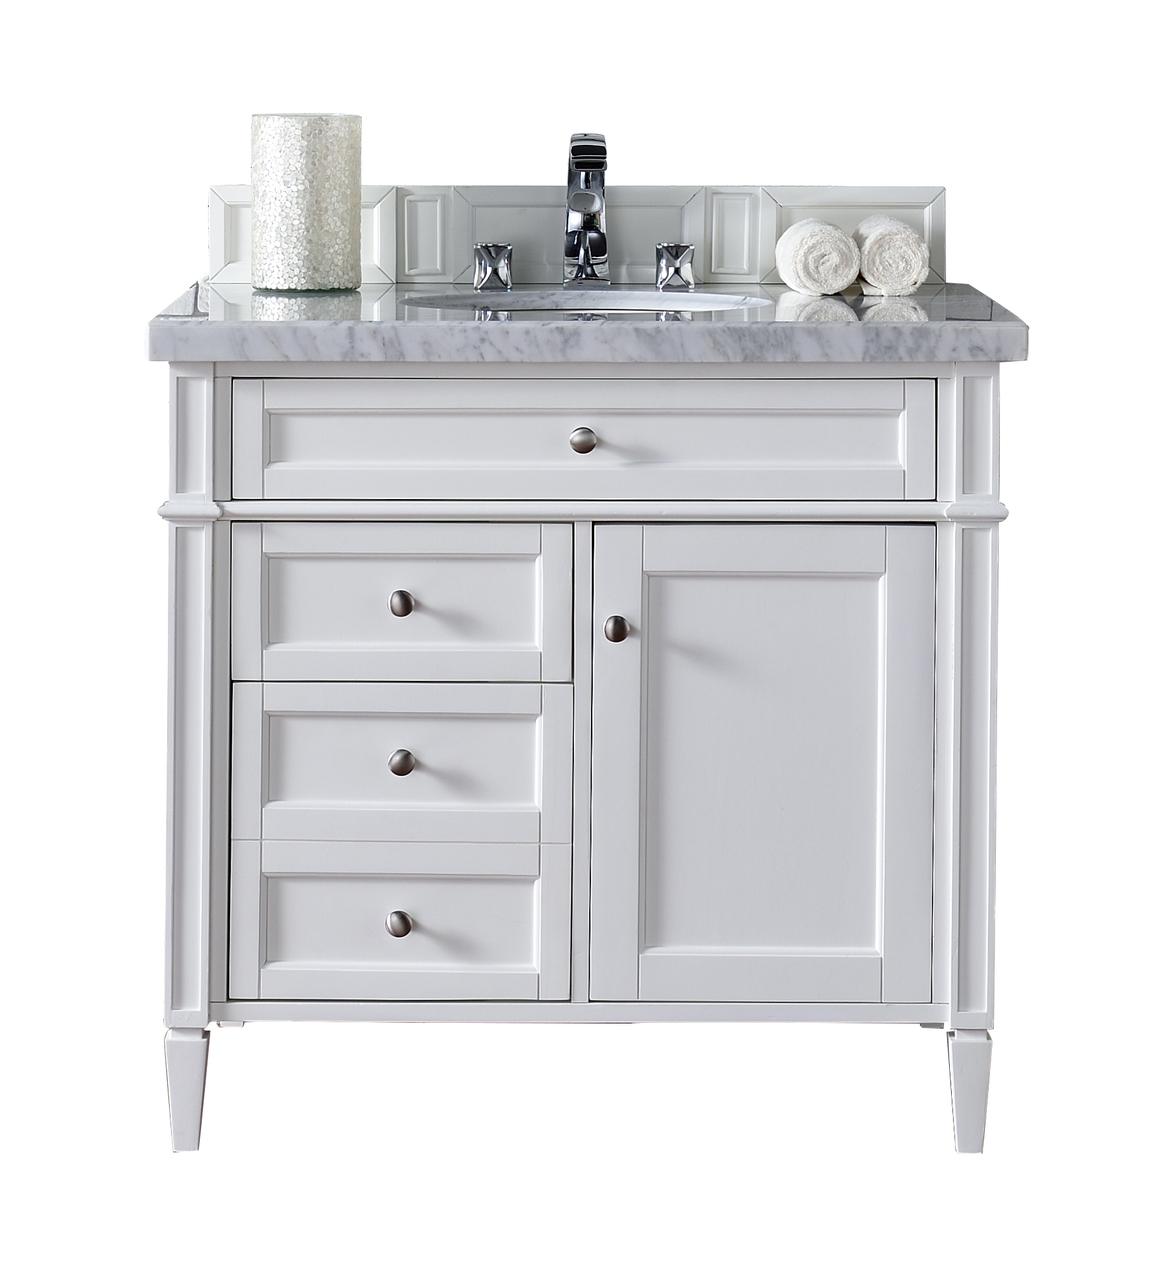 36 inch single contemporary bathroom vanity white finish optional tops